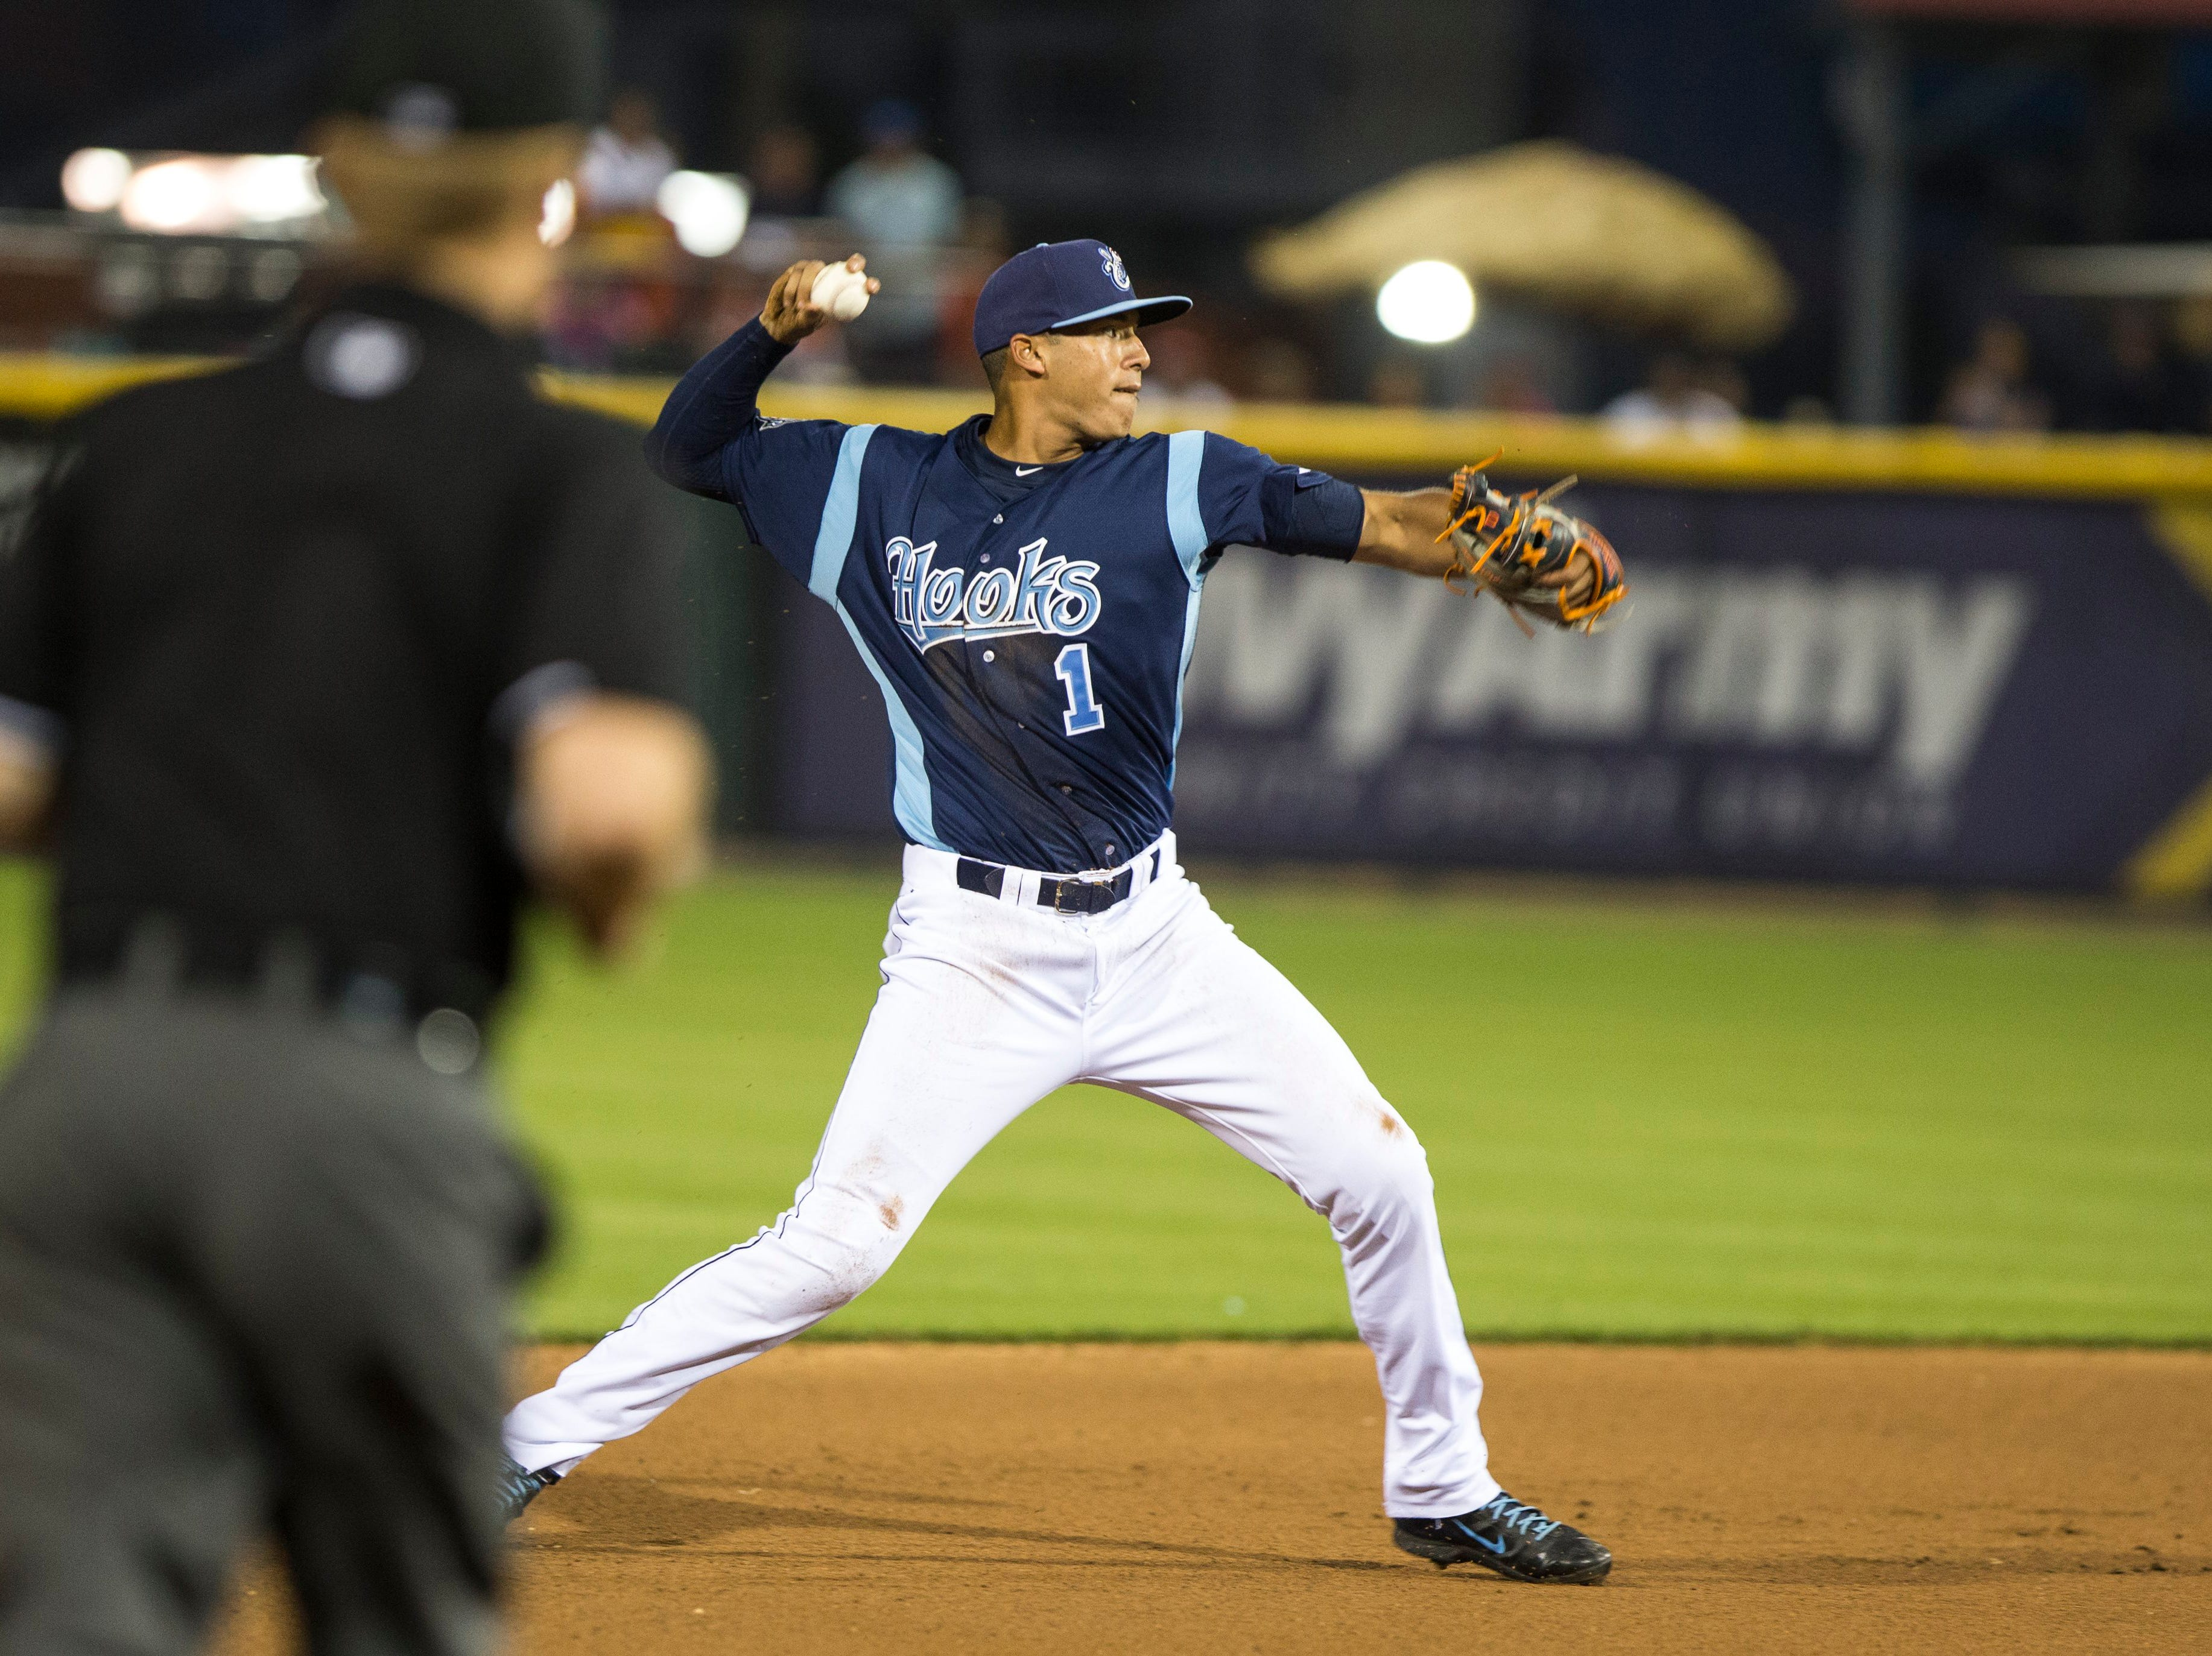 Andrew Mitchell/Caller-TimesCorpus Christi Hooks' Carlos Correa fields and throws the ball to first for an out during their 2015 Texas League All Star Game against the Houston Astros at Whataburger Field Thursday evening, April 2, in Corpus Christi.